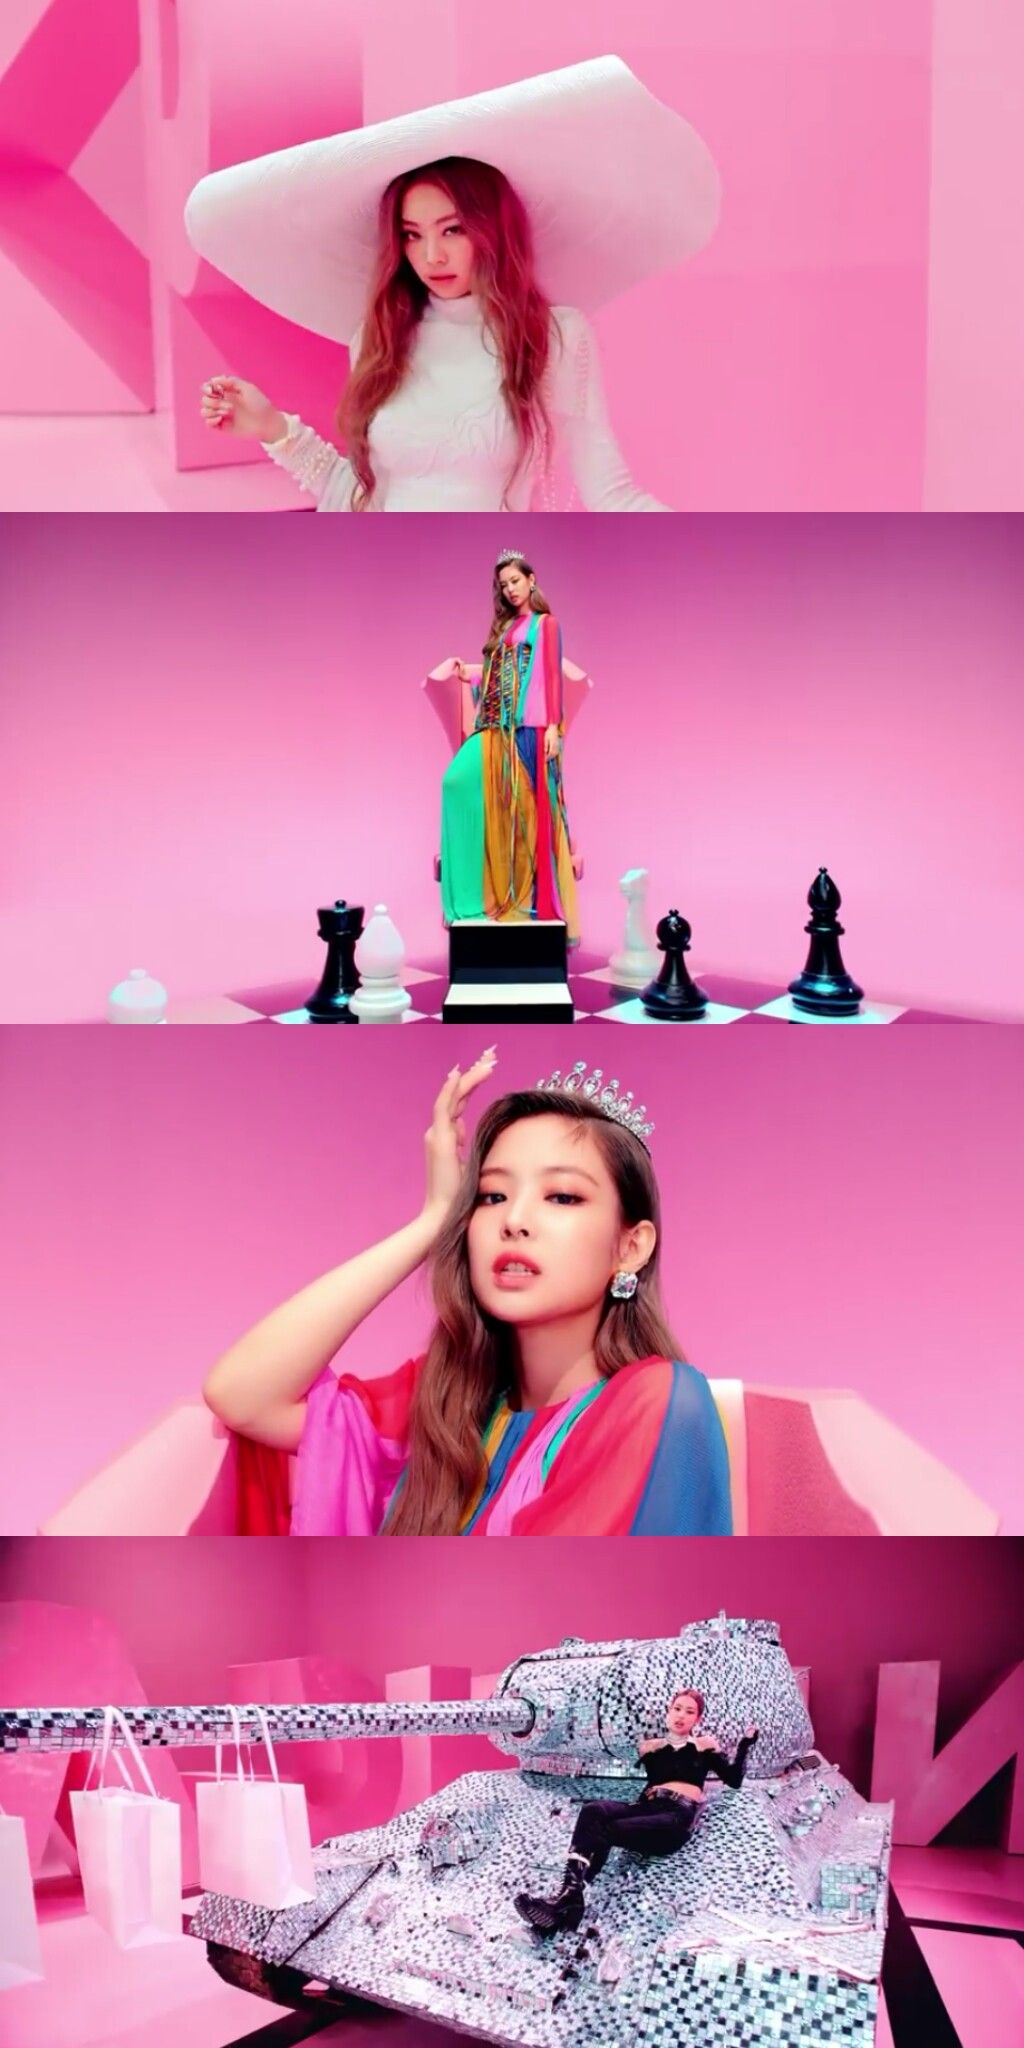 JENNIE BLACKPINK '뚜두뚜두 (DDU-DU DDU-DU) 'SQUARE UP' # ...